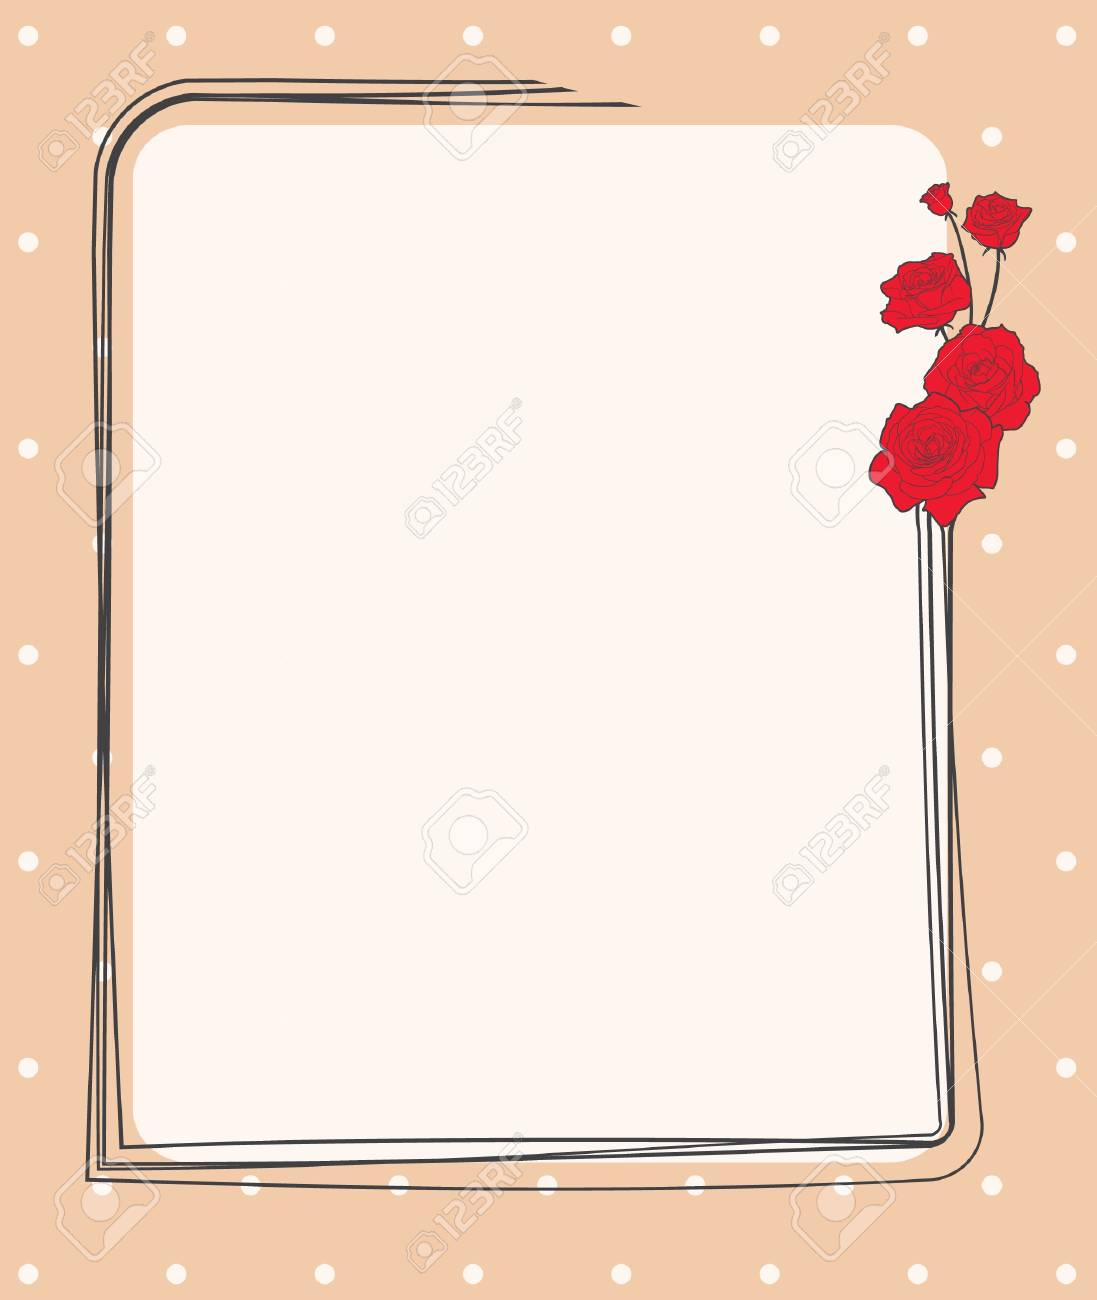 Card illustration with roses Stock Vector - 13758989